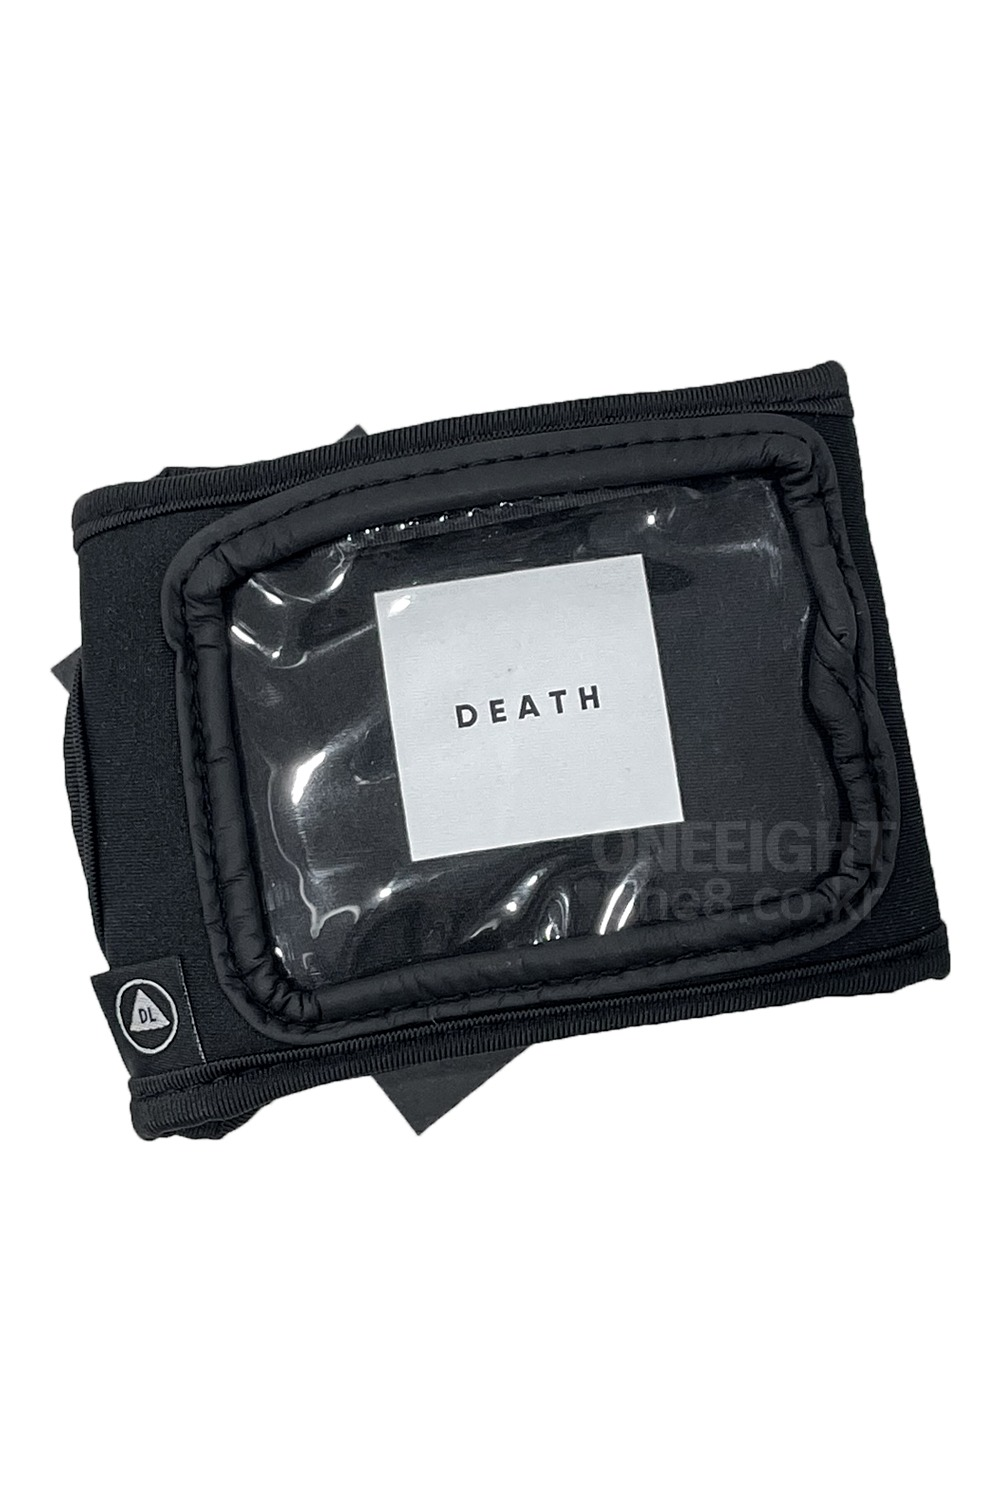 2021 데스라벨 글러브 패스 2021 DEATH LABEL_GLOVE PASS_BLACK_DGDL005BK